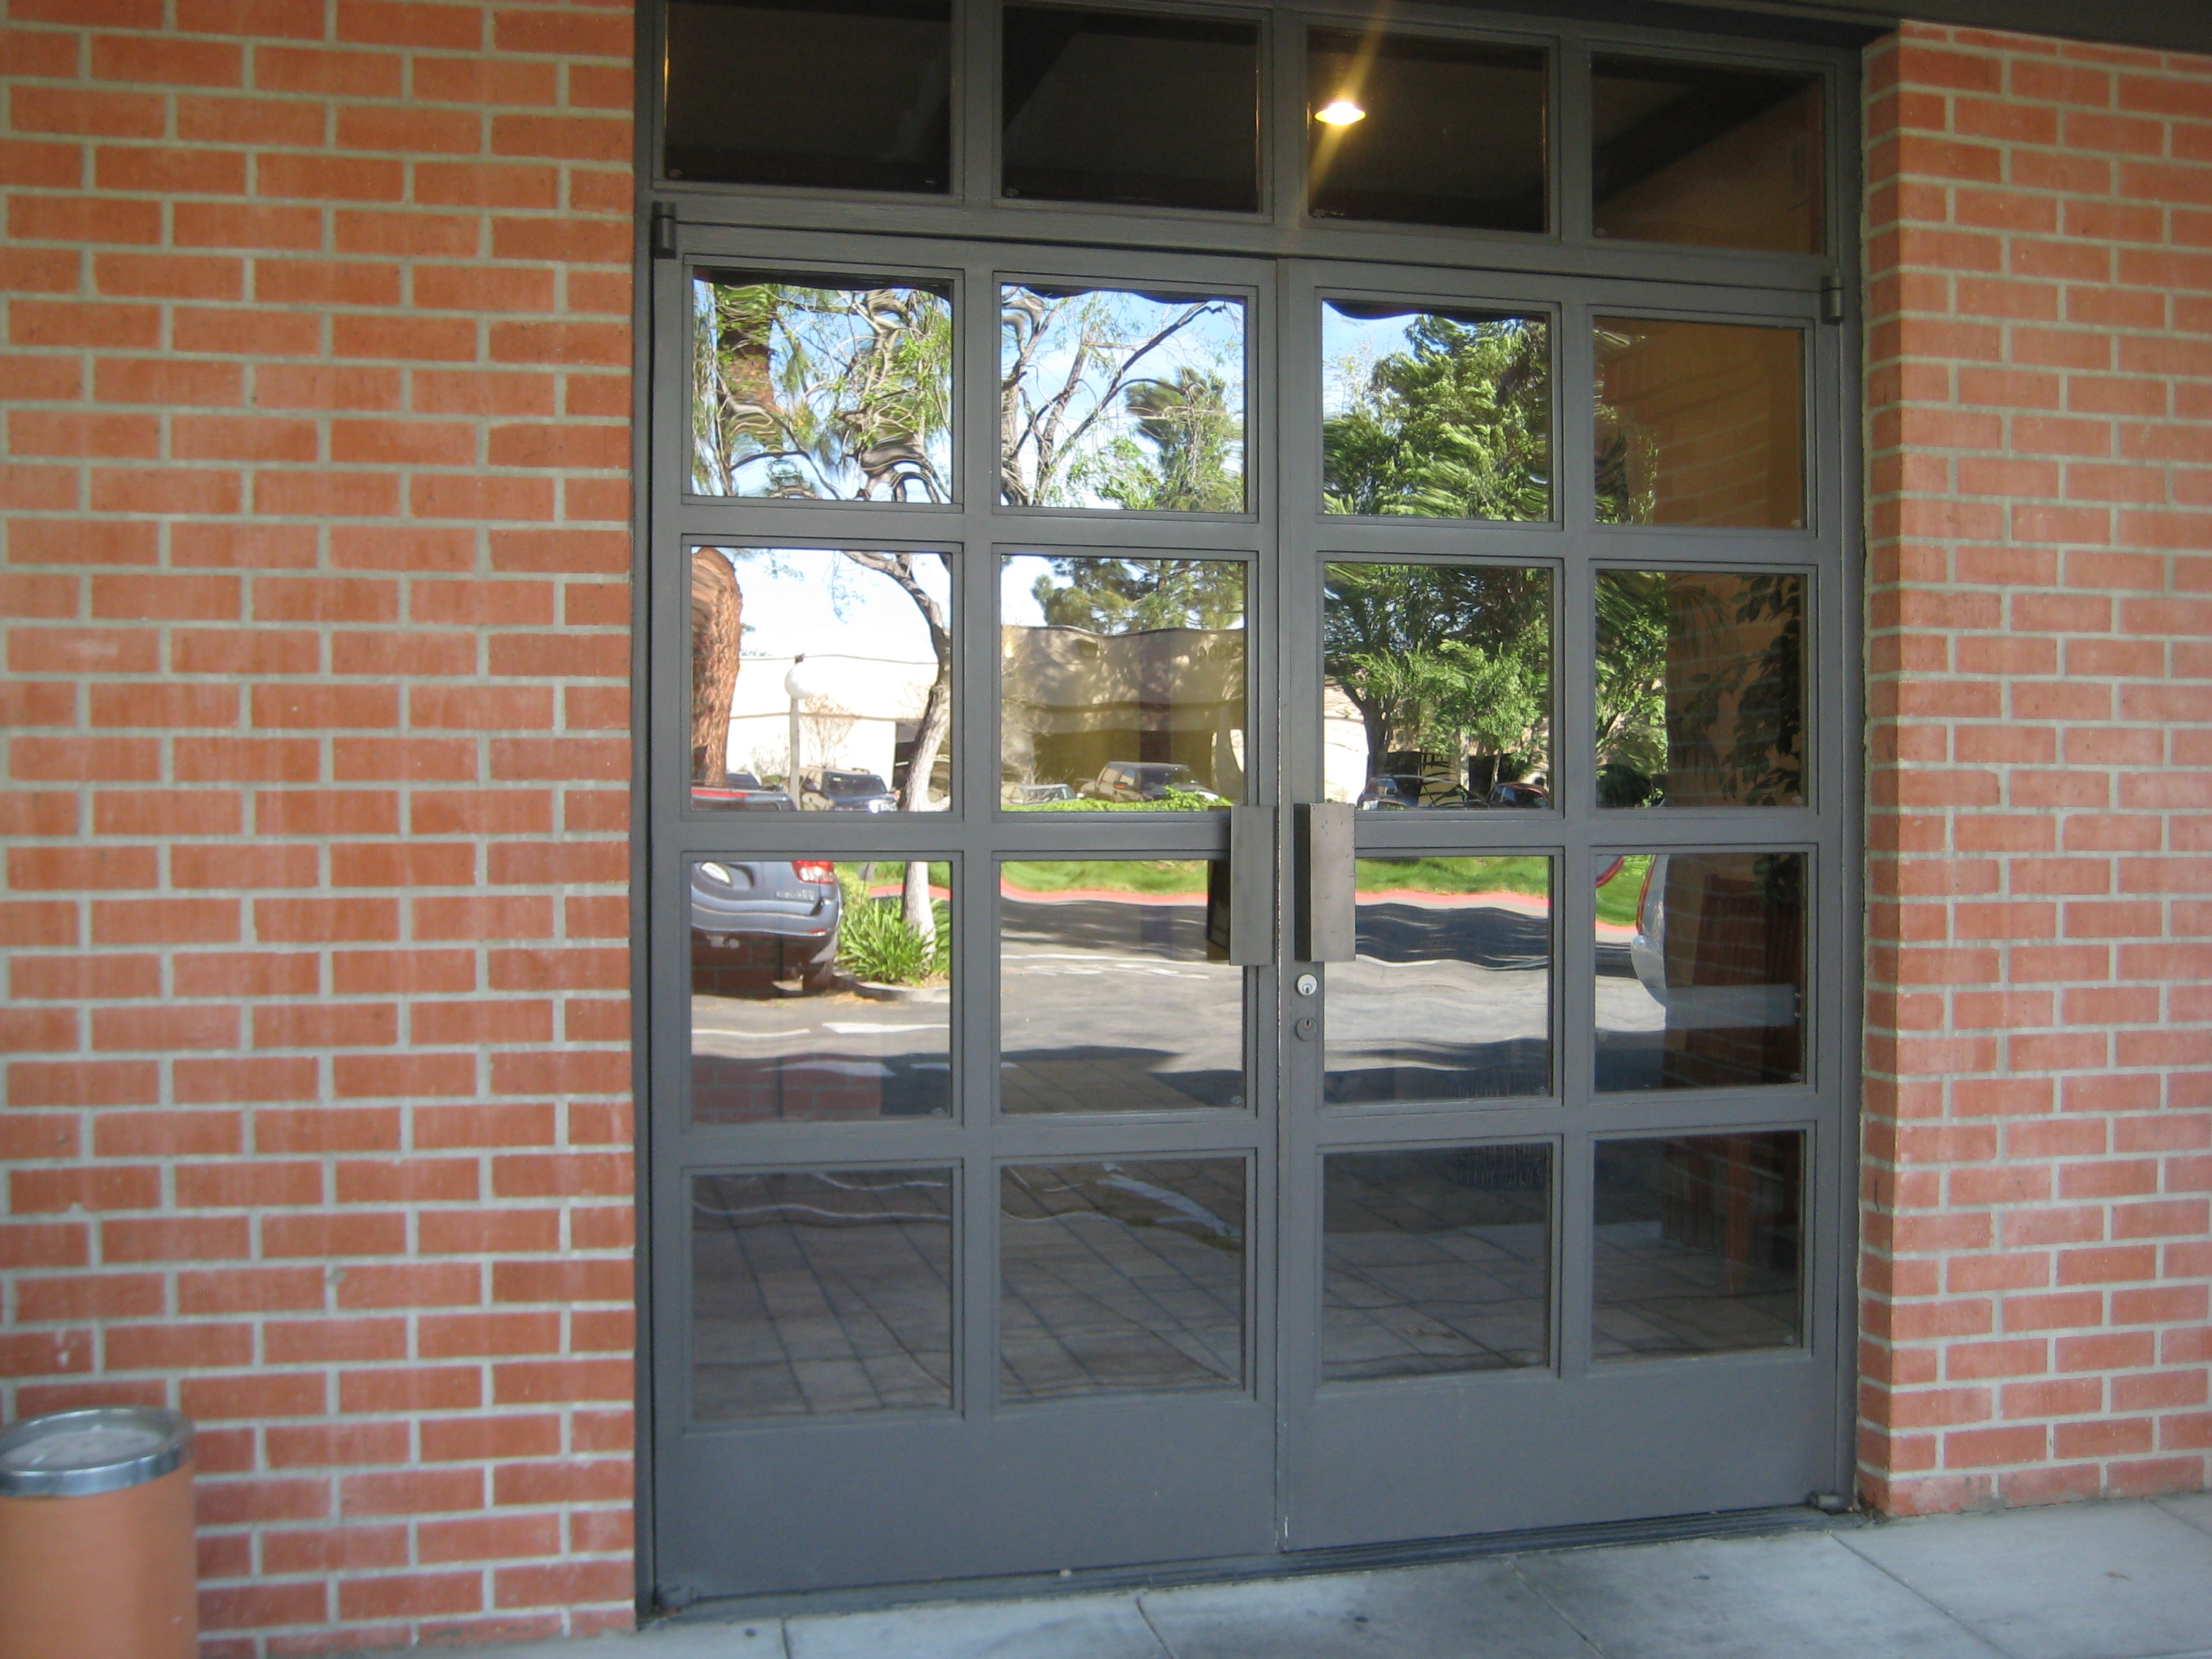 Commercial doors glass storefront windows metal security for Preferred windows and doors